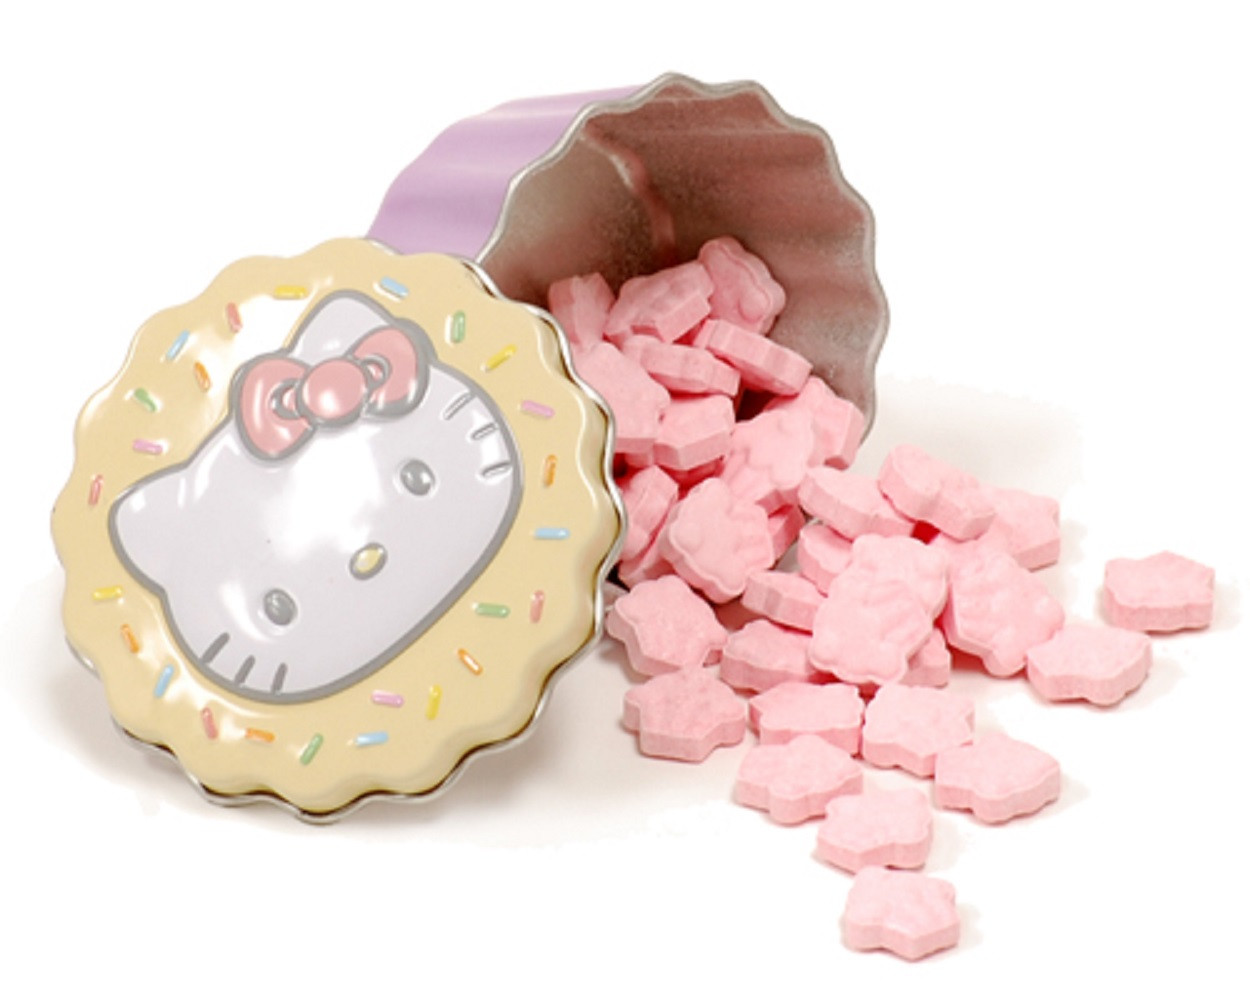 Candies - Hello Kitty - in Mini Tin Cupcake Container - Yellow